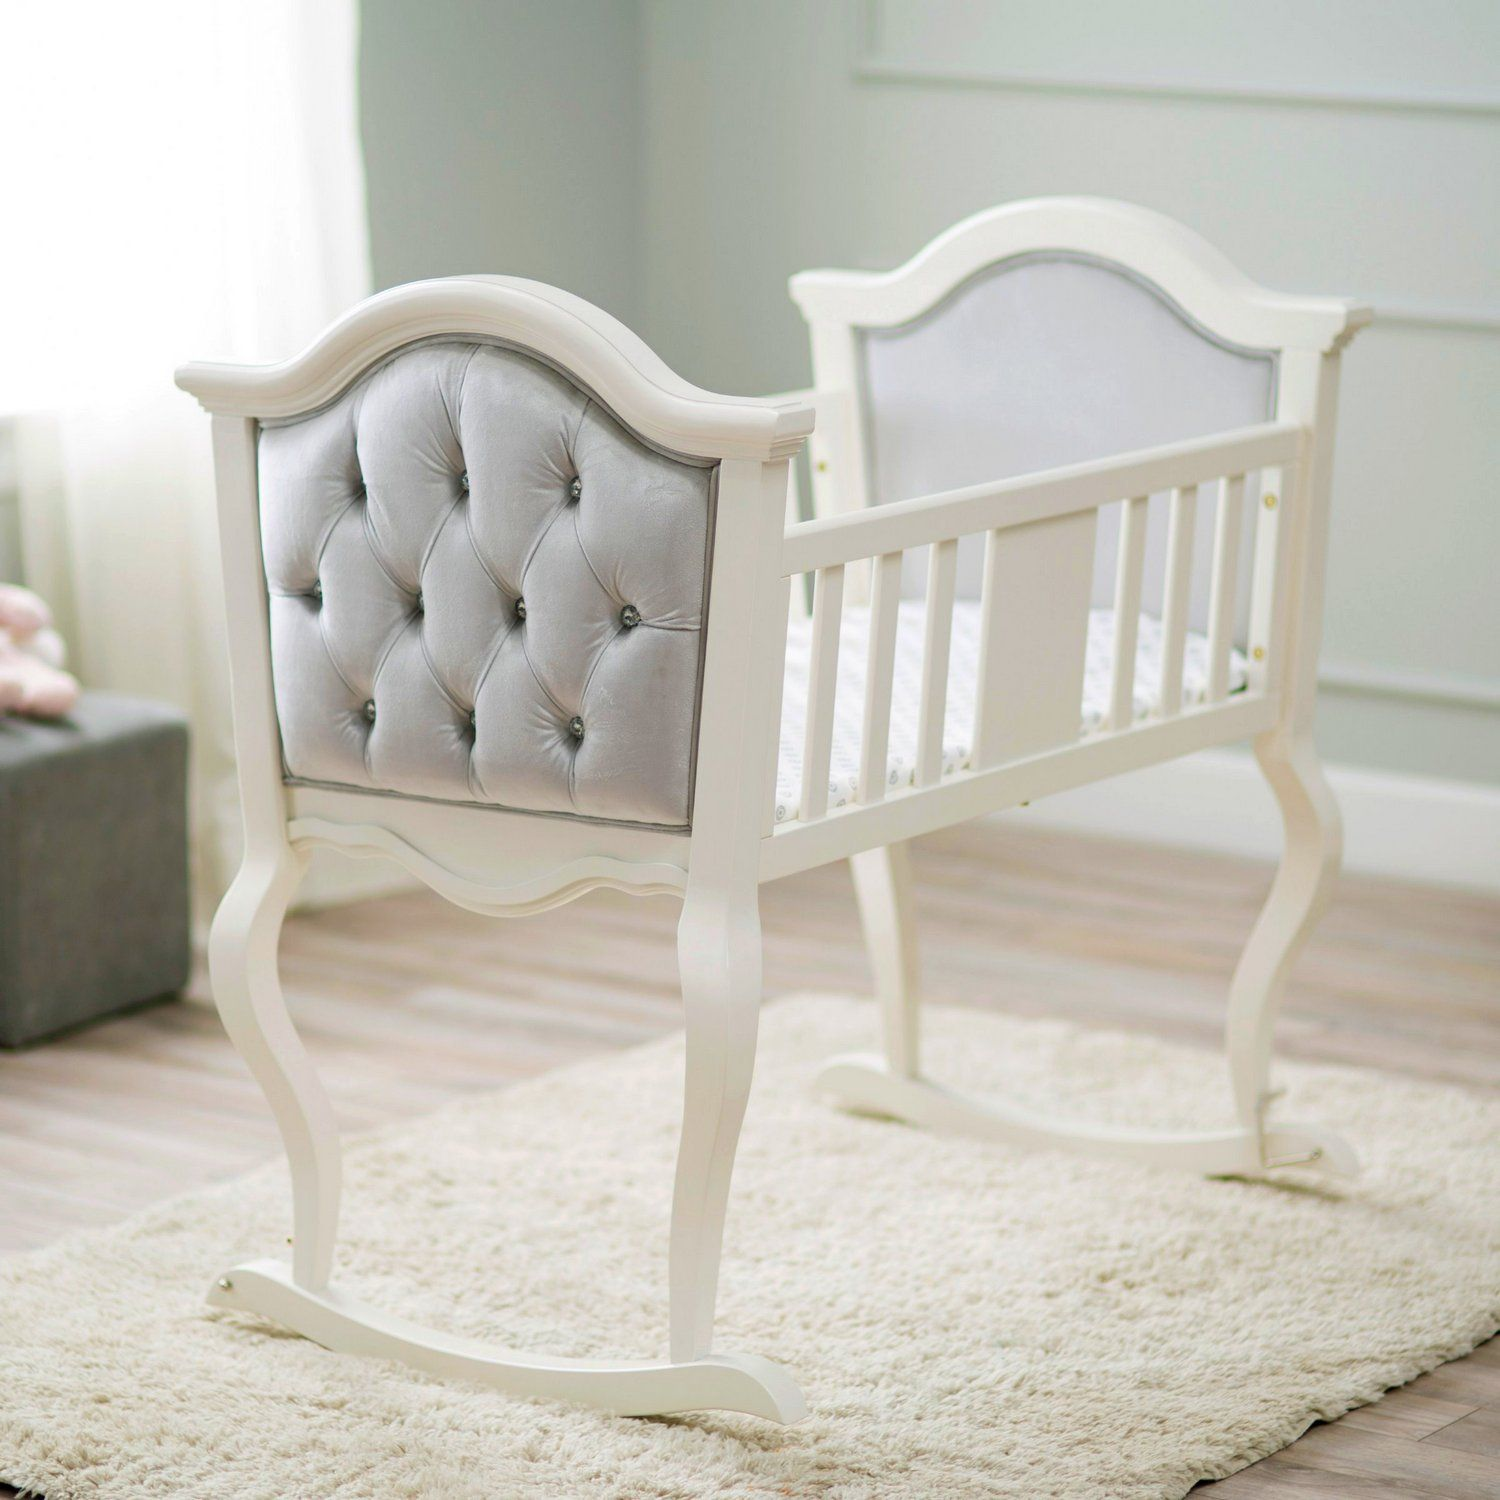 White Wooden Bassinets | Baby products | Pinterest | Babies, Nursery ...